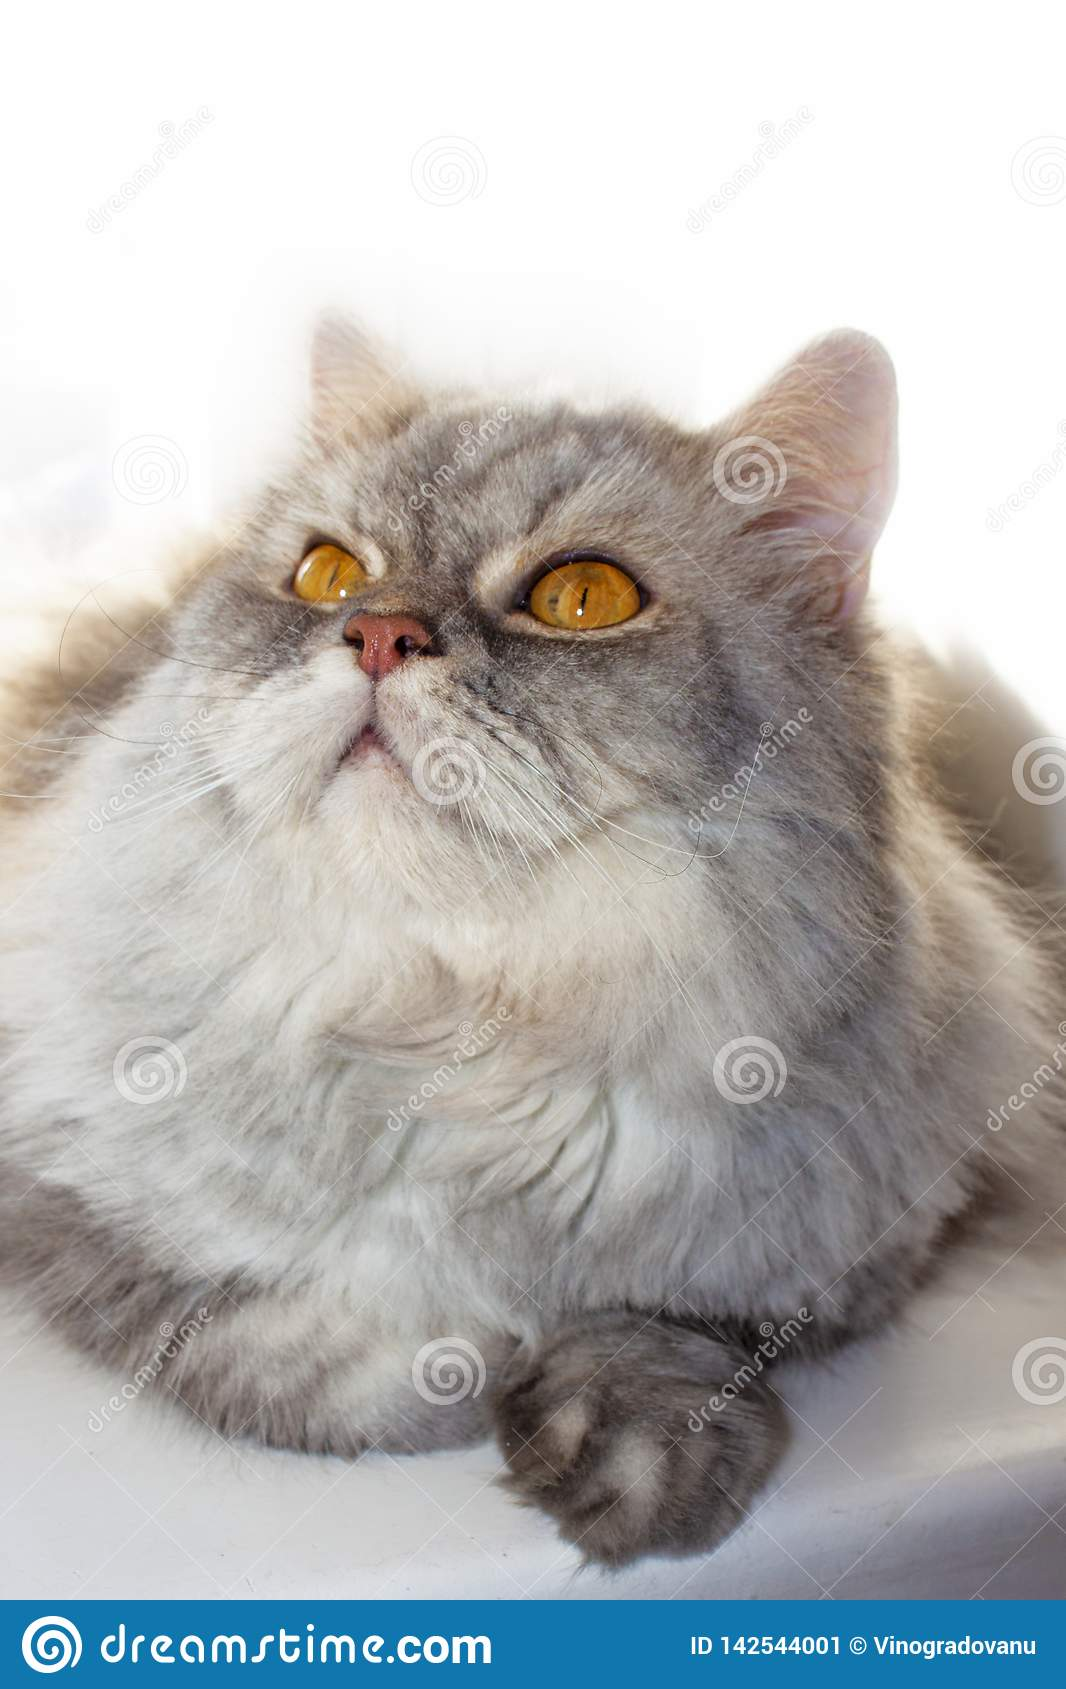 Grey fluffy cat on the window looks up. Pensive cat